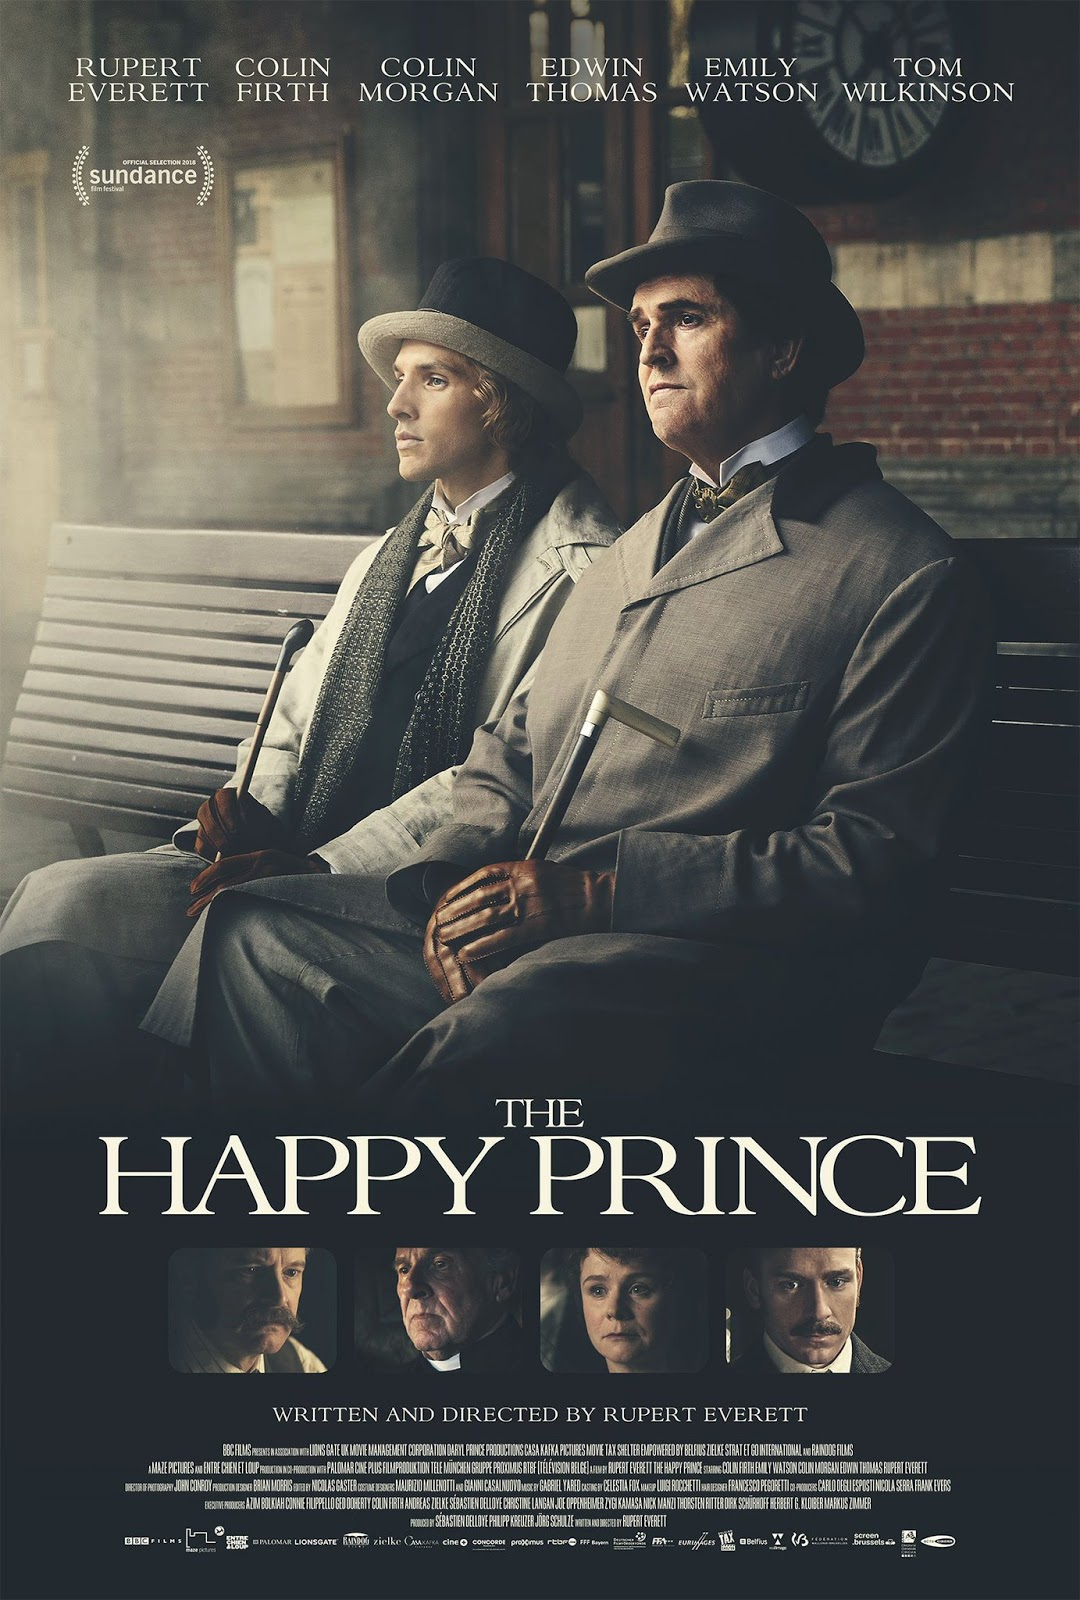 The Happy Prince review / Rupert Everett is magnificent in dream role as  dying Oscar Wilde